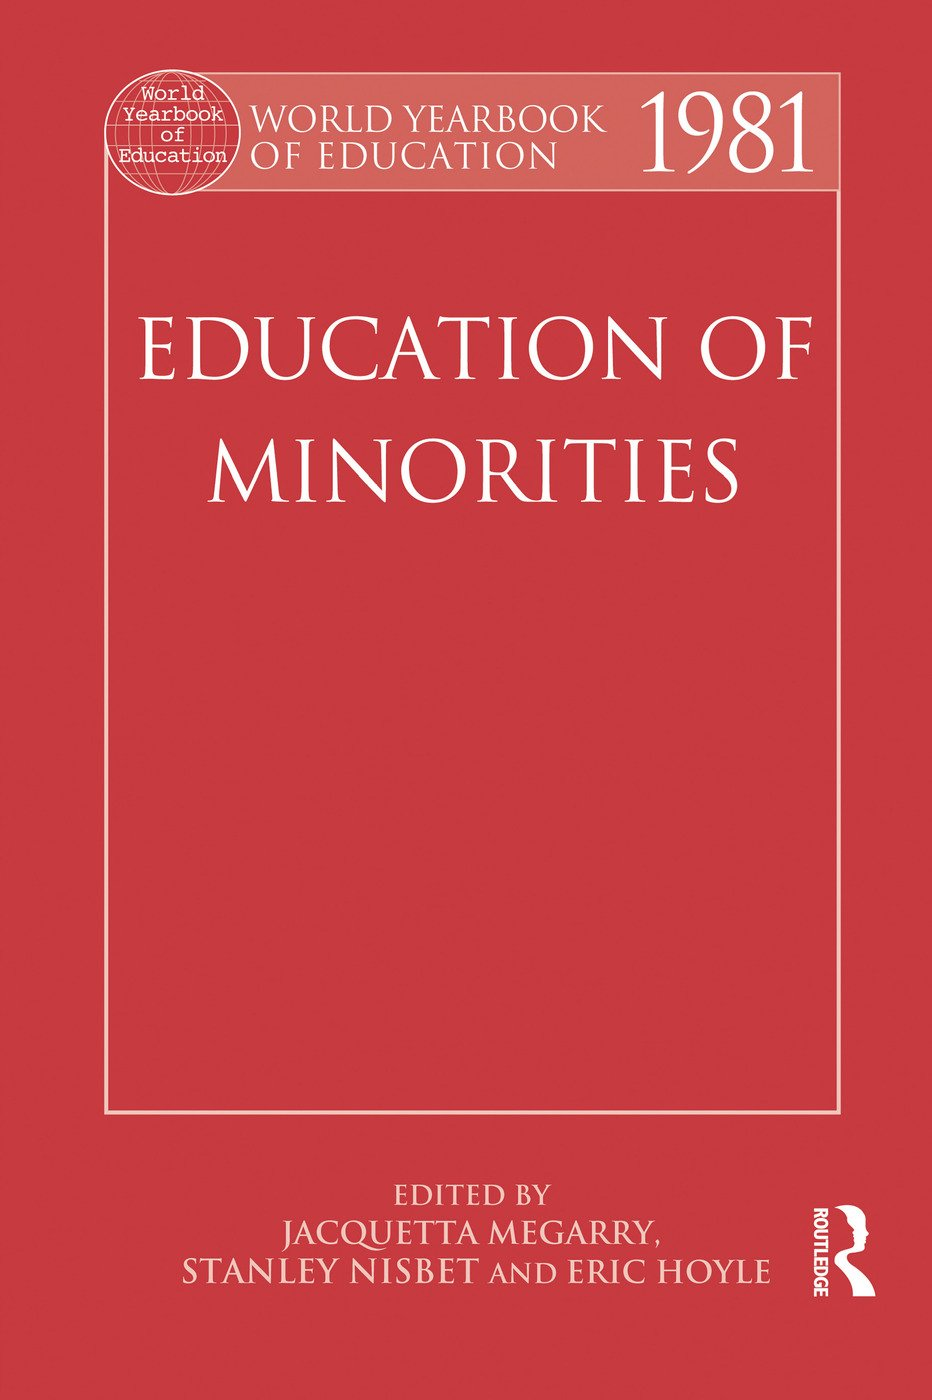 World Yearbook of Education 1981: Education of Minorities, 1st Edition (Paperback) book cover